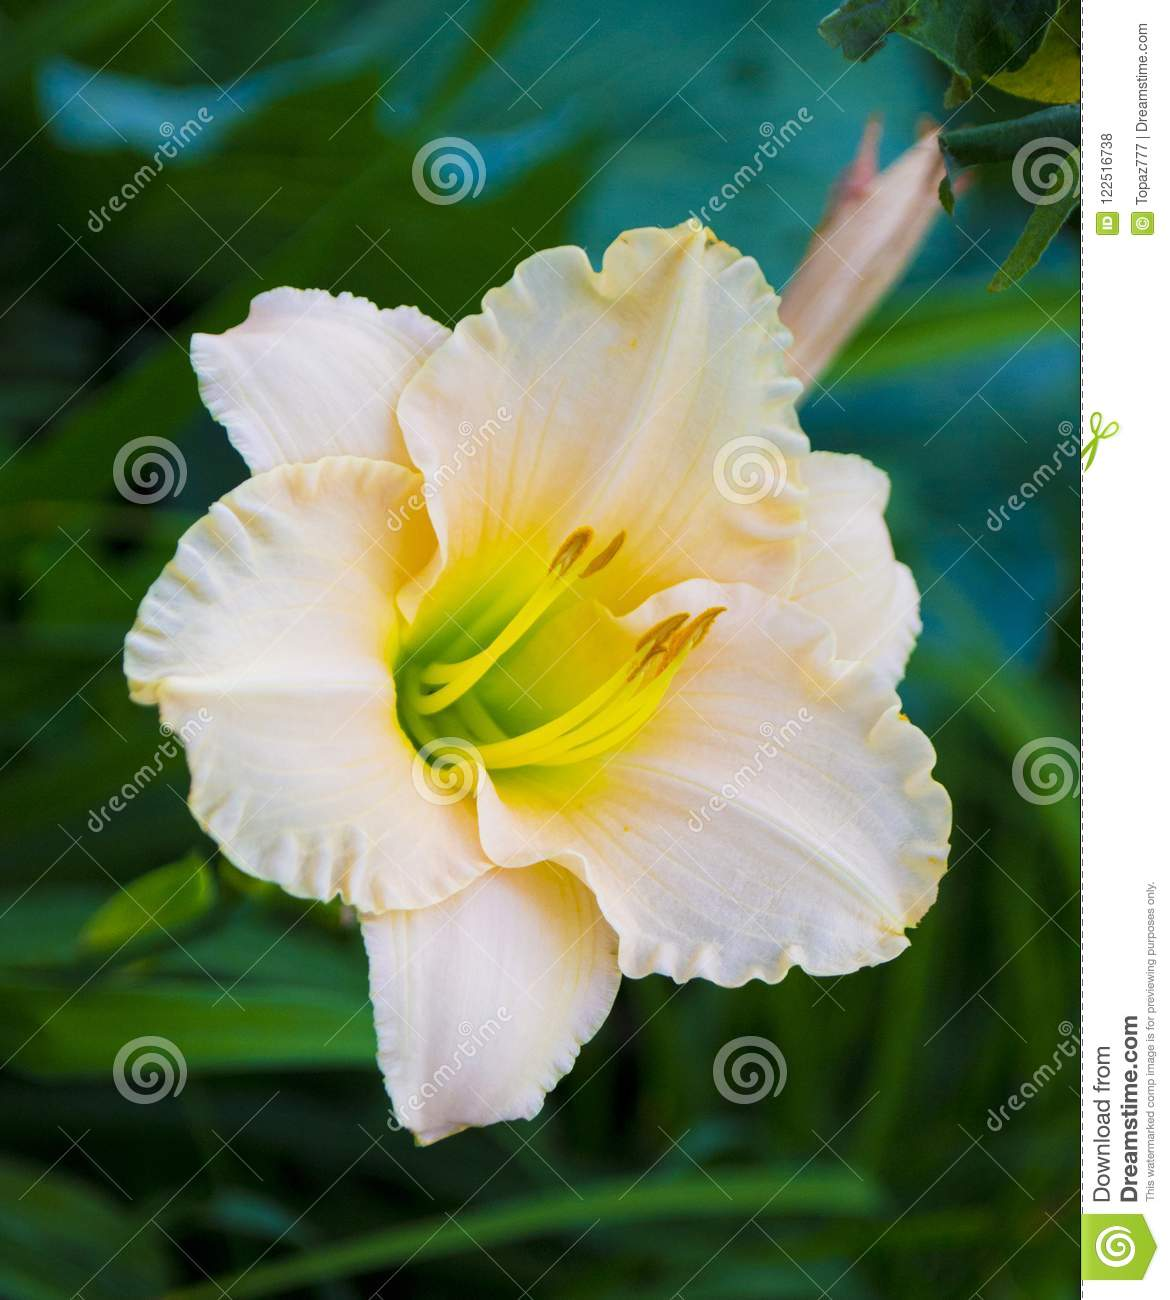 Lily Flowers Close Up Stock Photo Image Of Lilies Plant 122516738